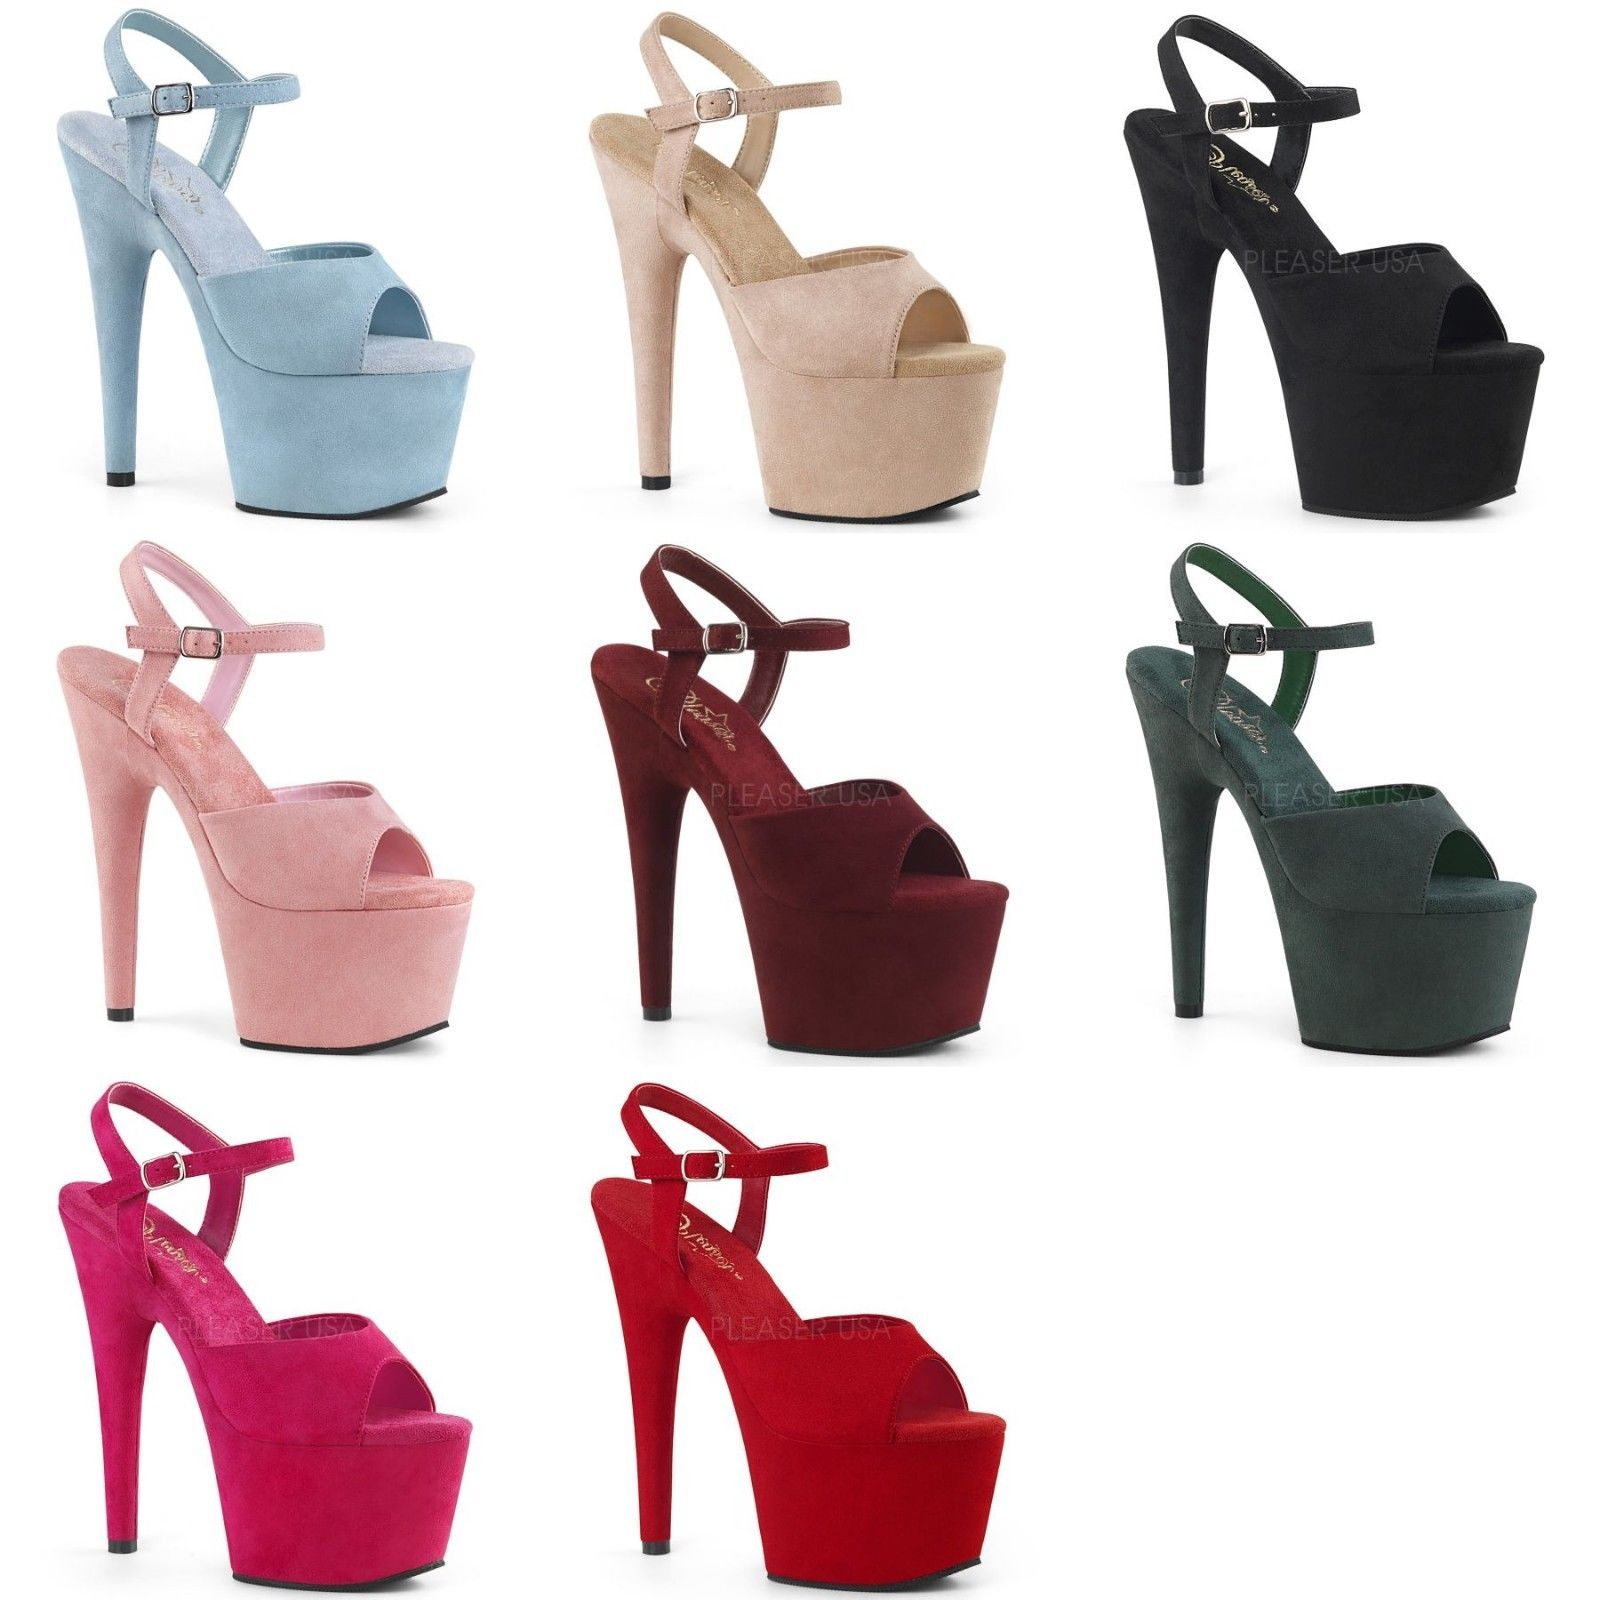 2d02f1c5758 PLEASER Adore-709FS Pink Red Blue Green Beige Faux Suede 7